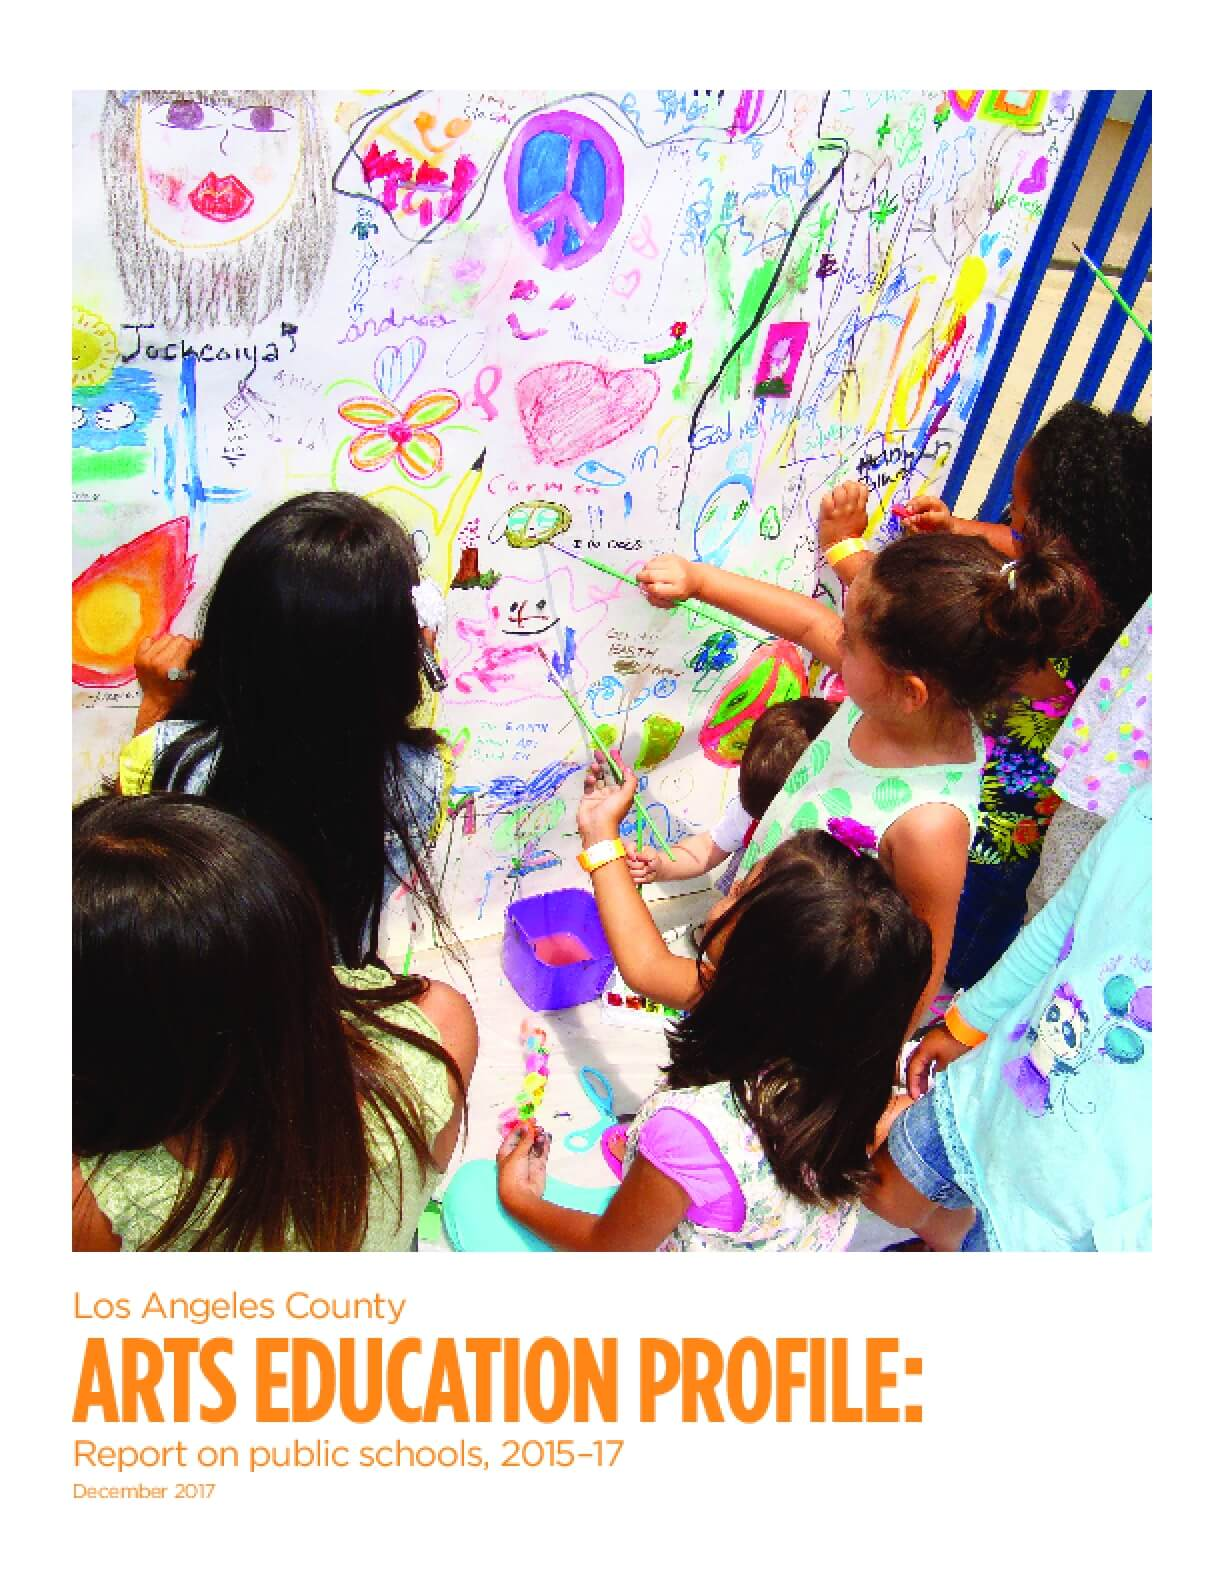 Los Angeles County Arts Education Profile: Report on public schools, 2015-17